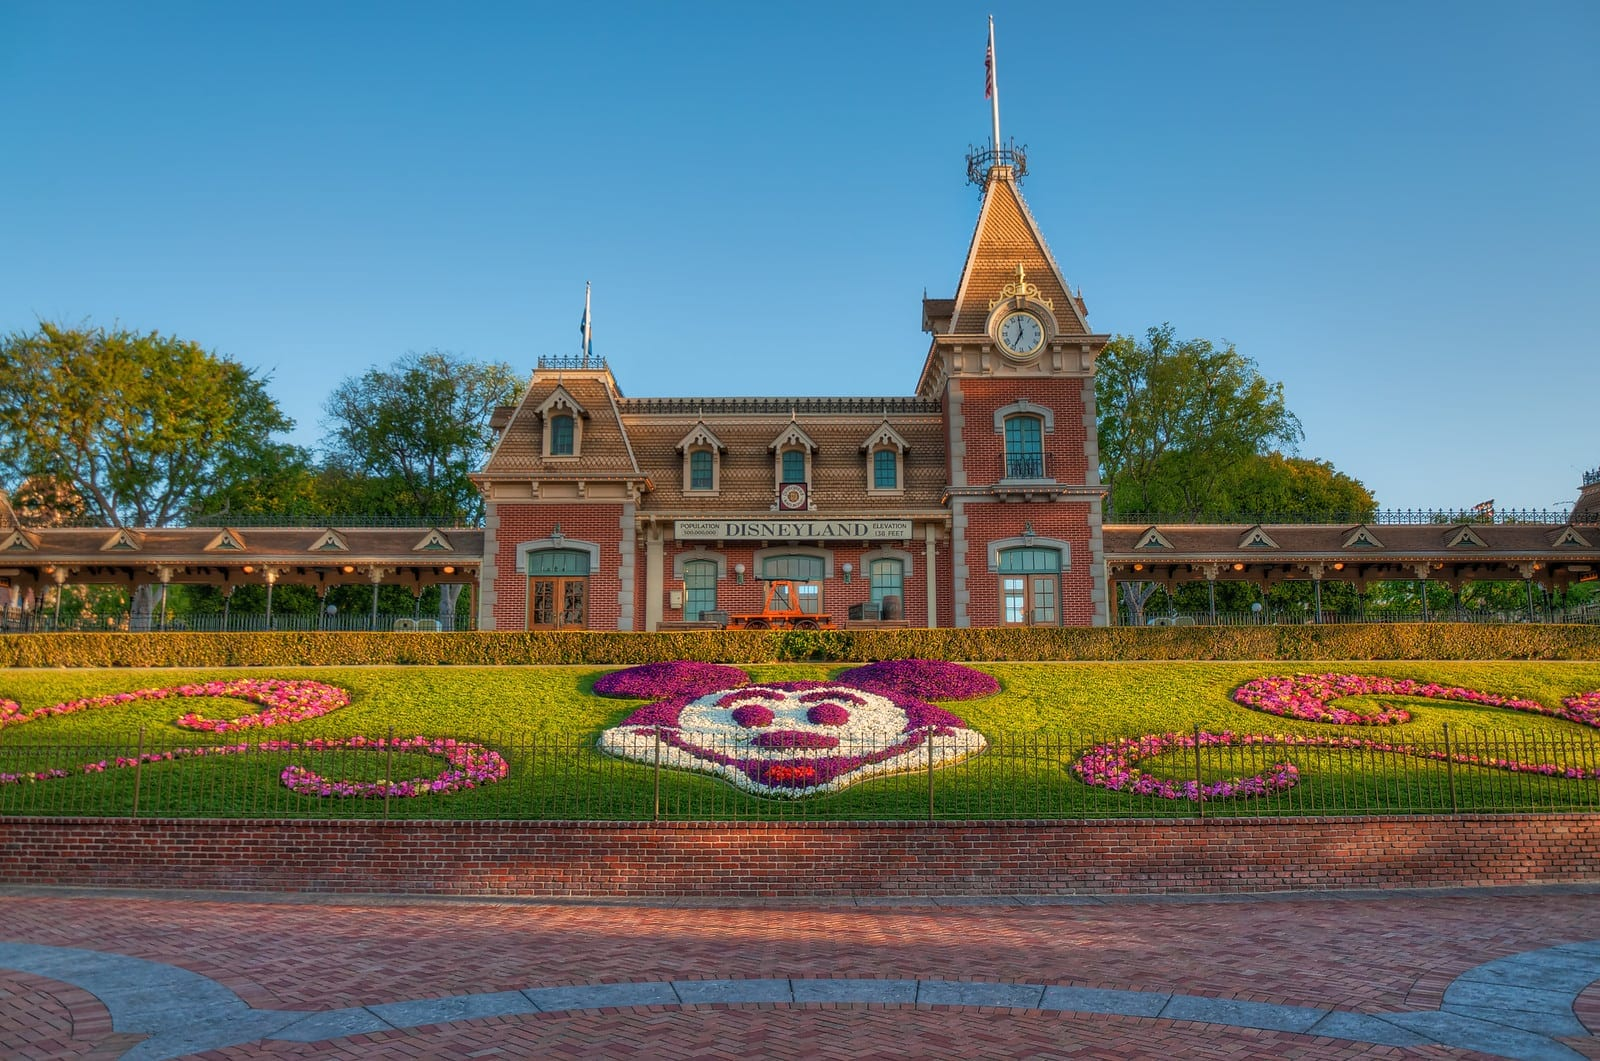 Discount Disneyland Tickets: How To Get Them Cheap